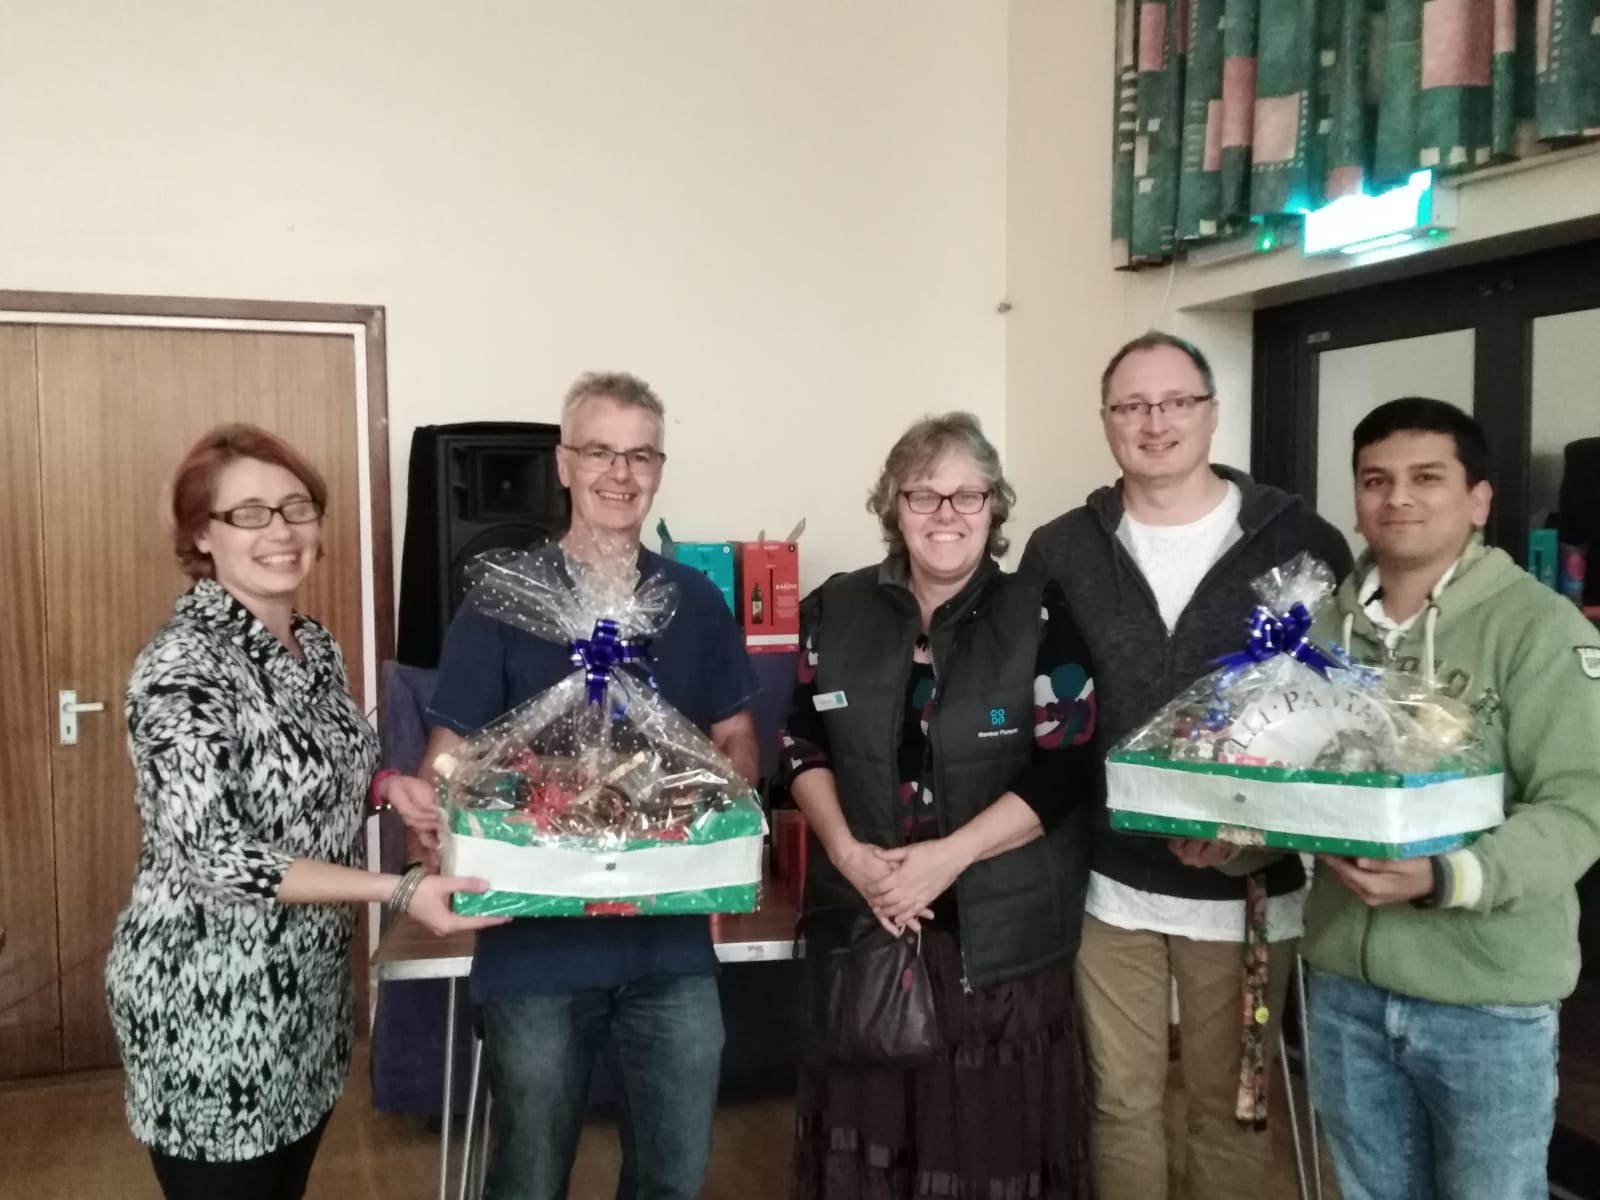 Colleagues pull together to support local children in community